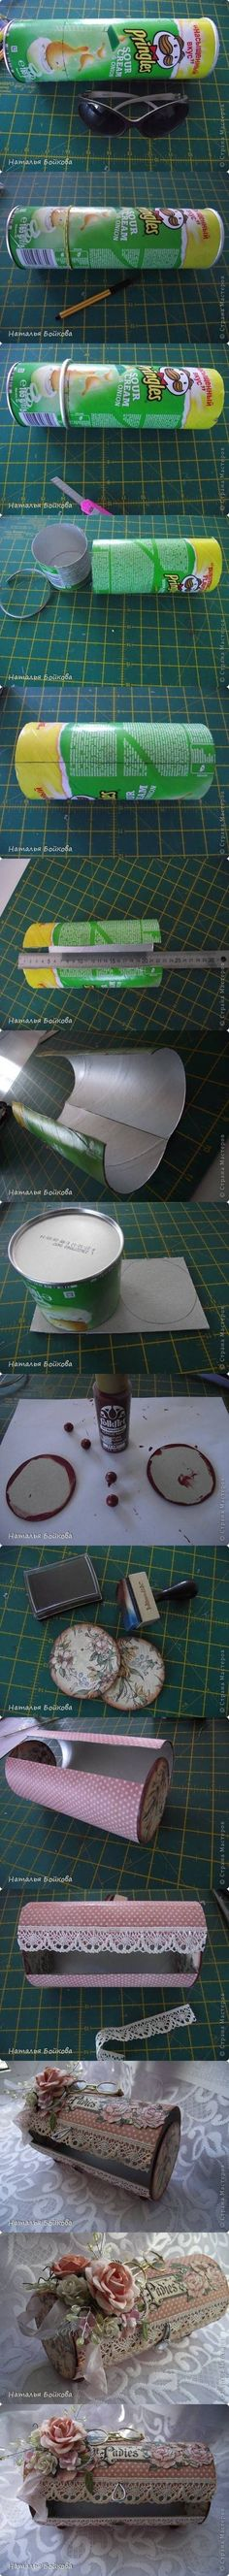 DIY Pretty Vintage Box from Pringles Can #craft #recycle: UNA CAJITA VINTAGE: